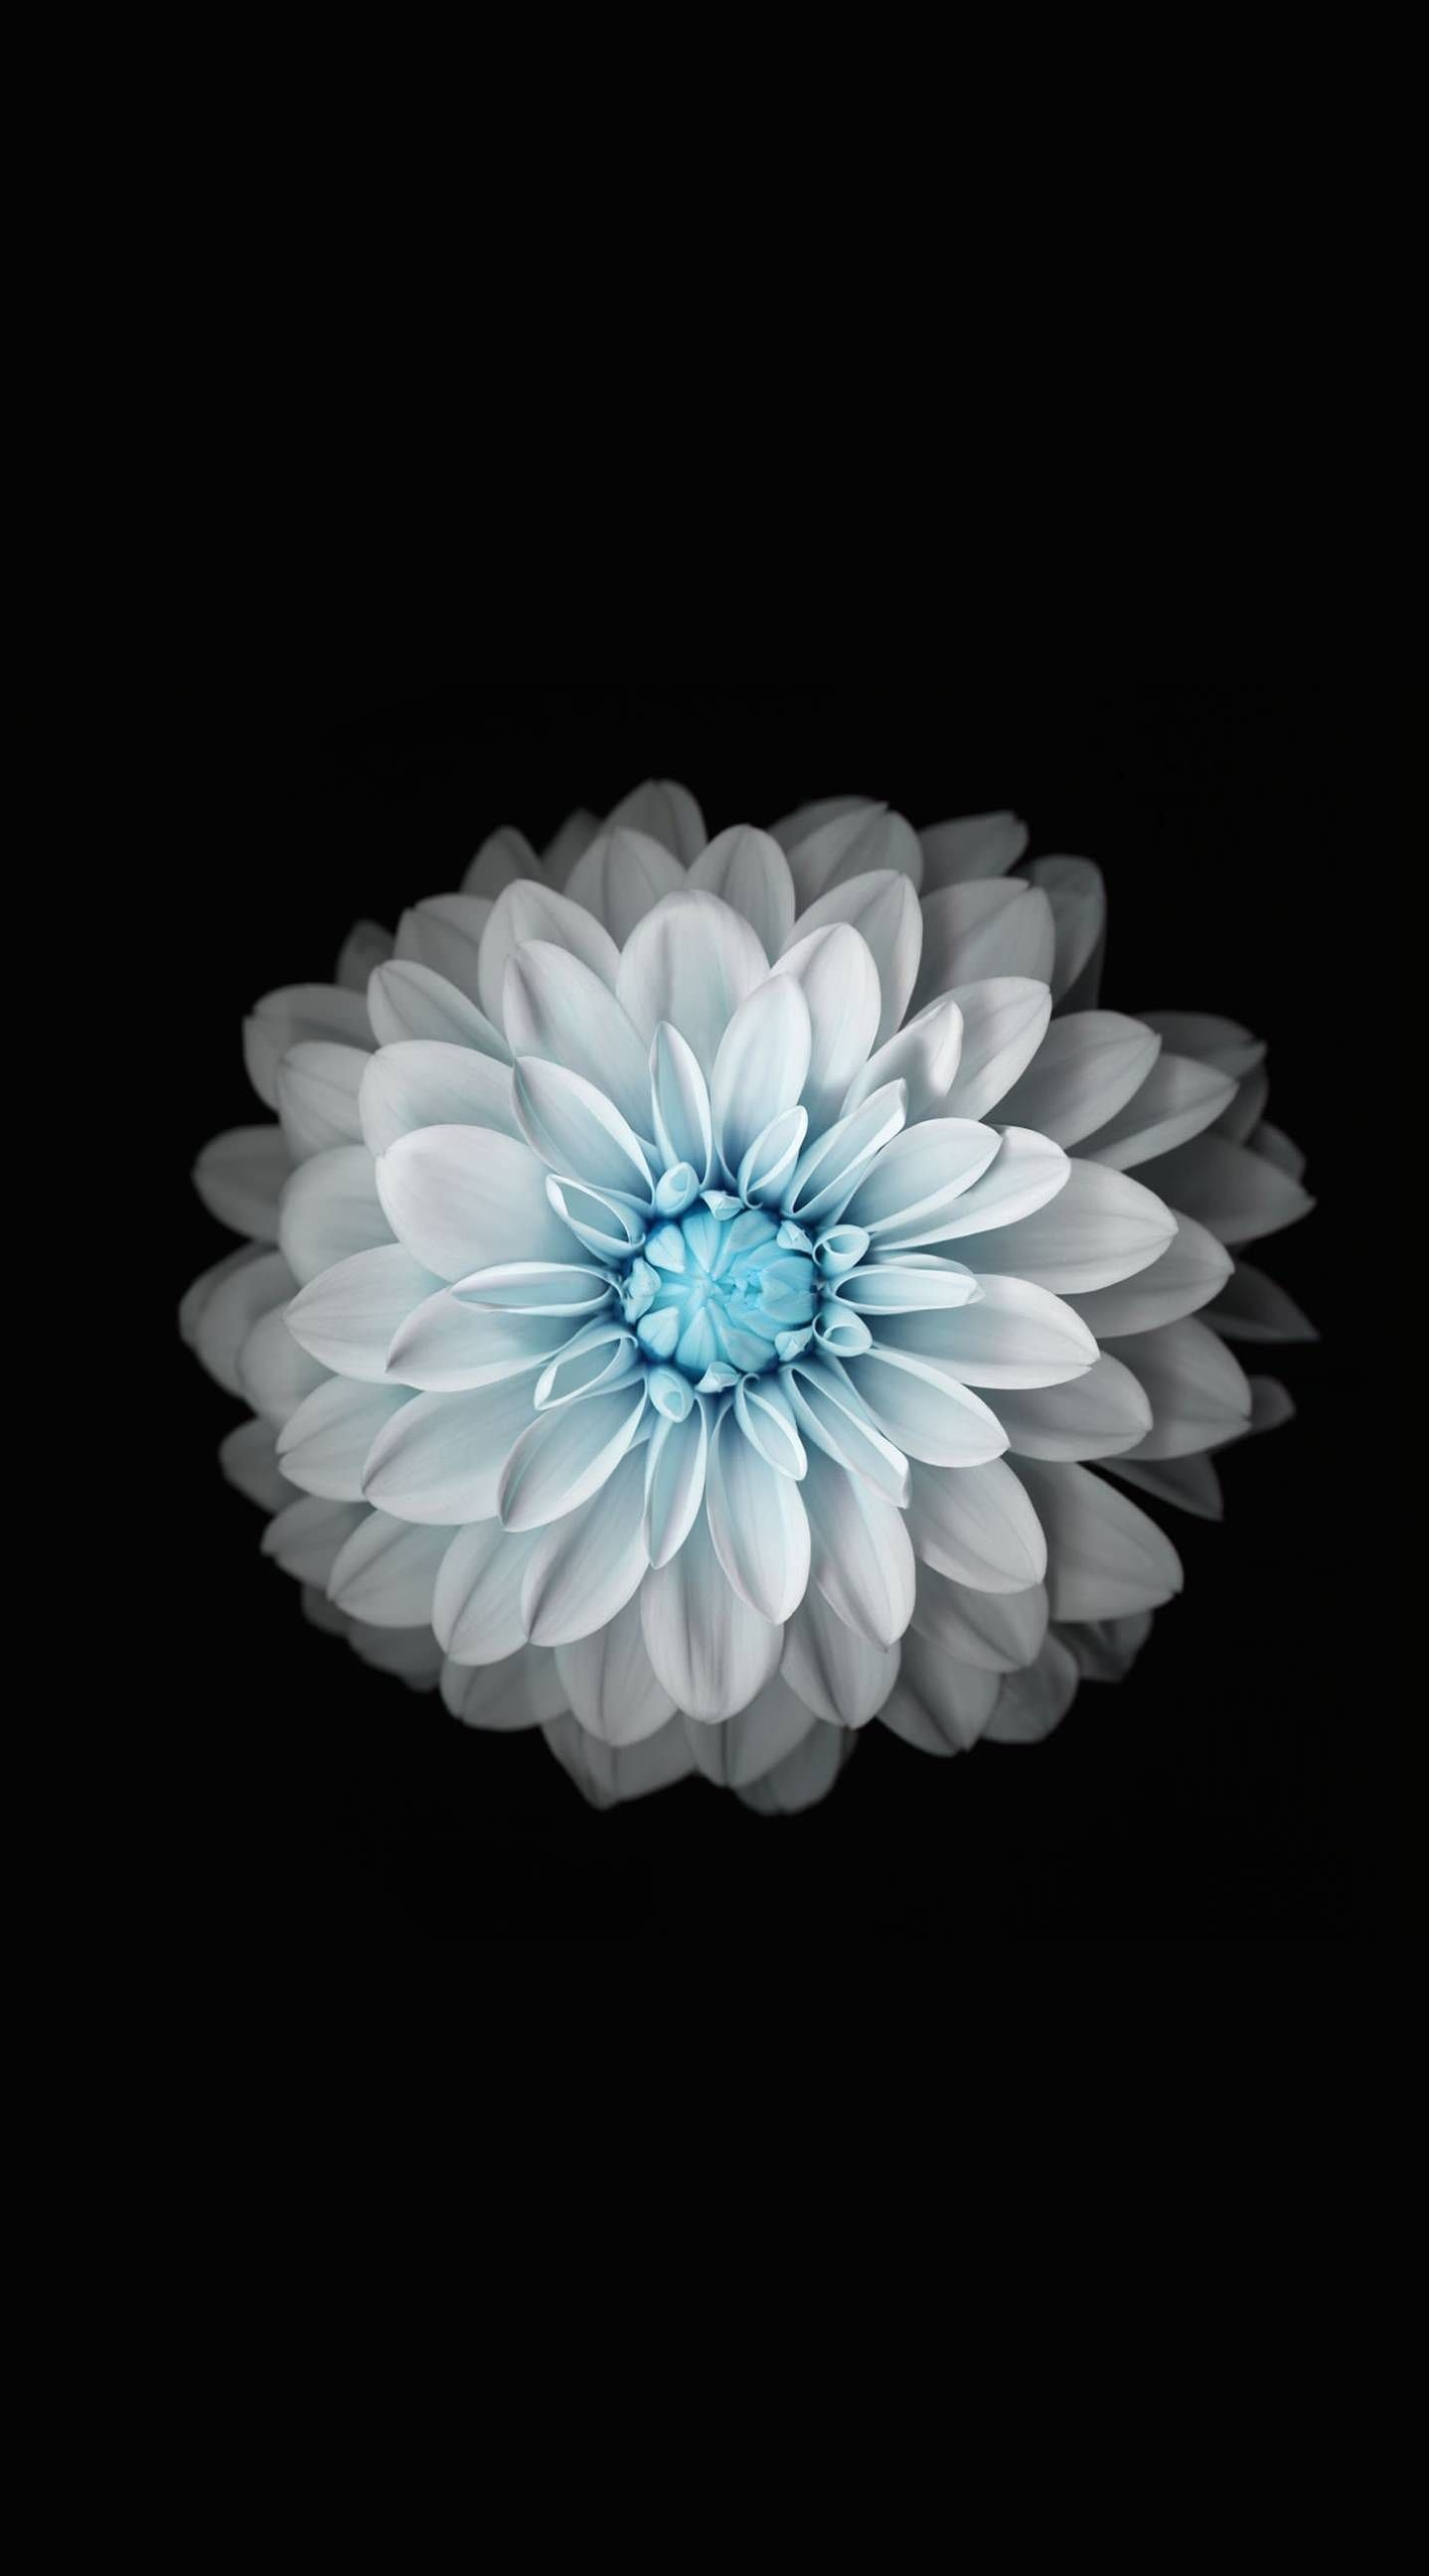 Iphone 6 Wallpapers Flower